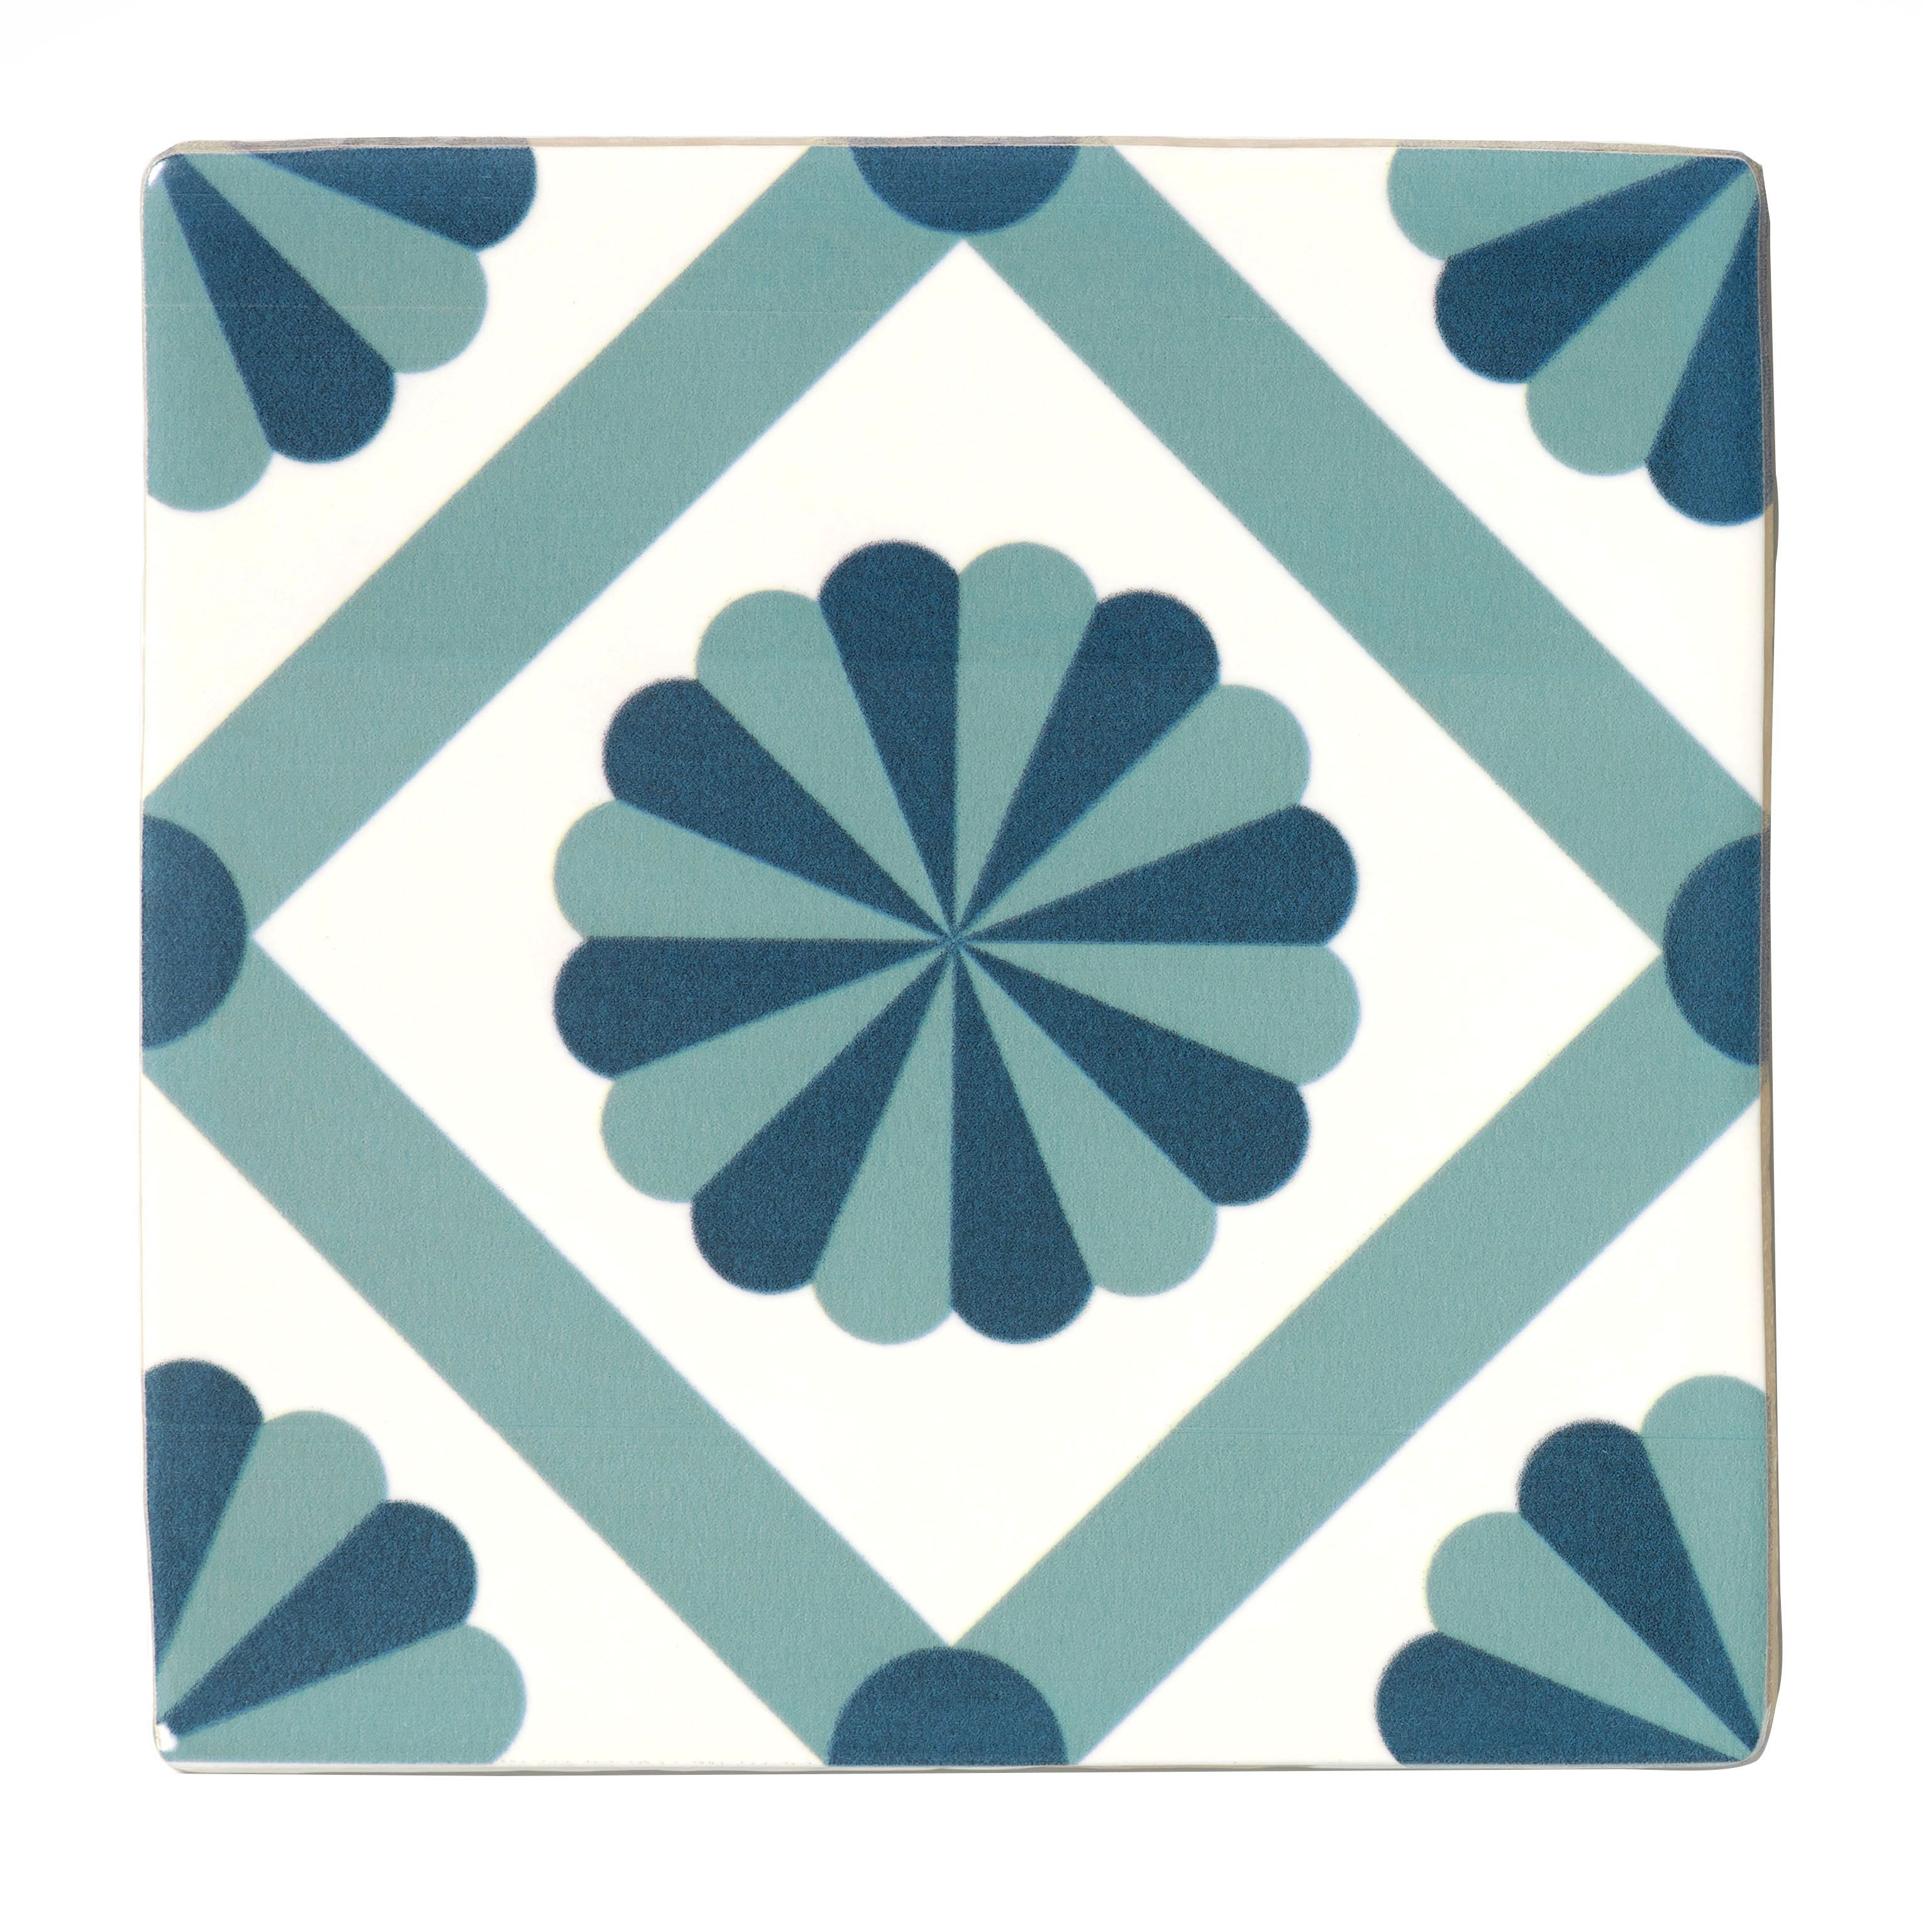 Diy at bq fusion blue white satin patterned ceramic wall tile pack of 25 l dailygadgetfo Image collections